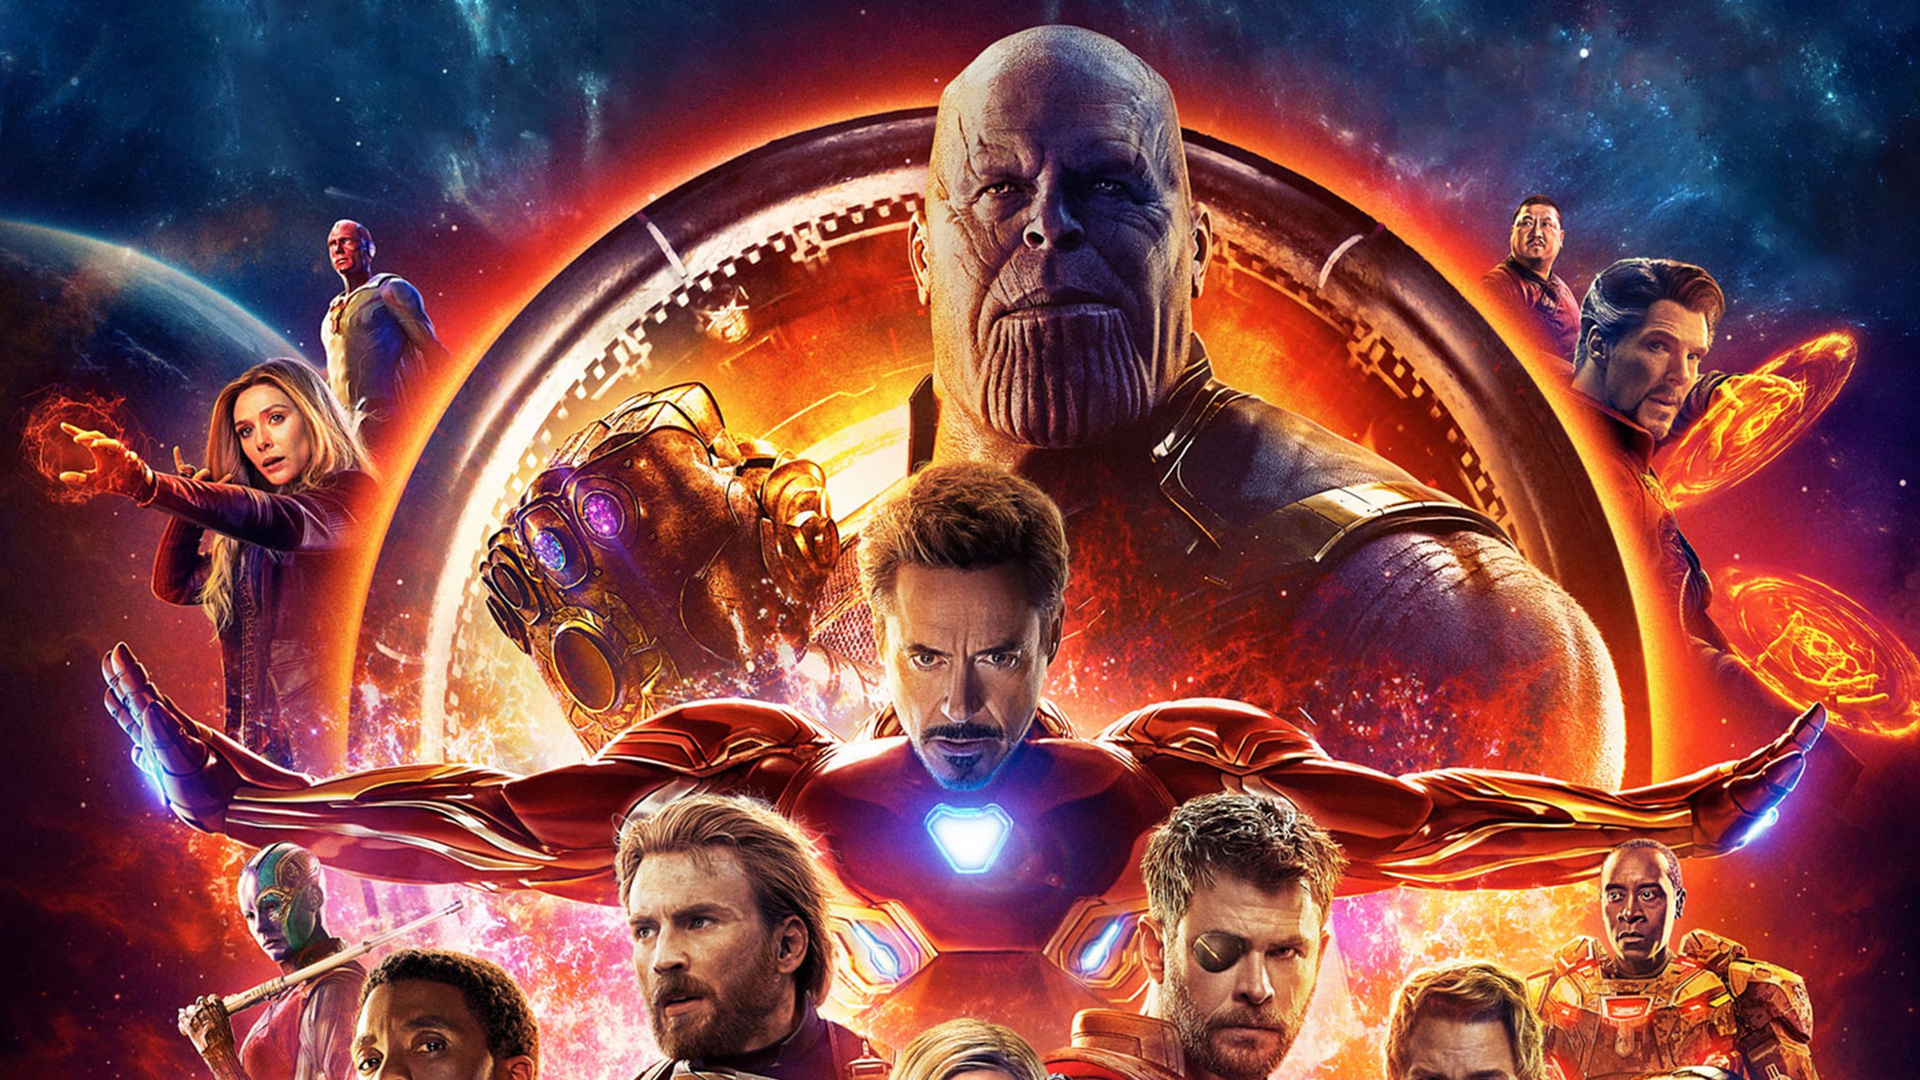 1920x1080 avengers infinity war 2018 4k poster laptop full hd 1080p